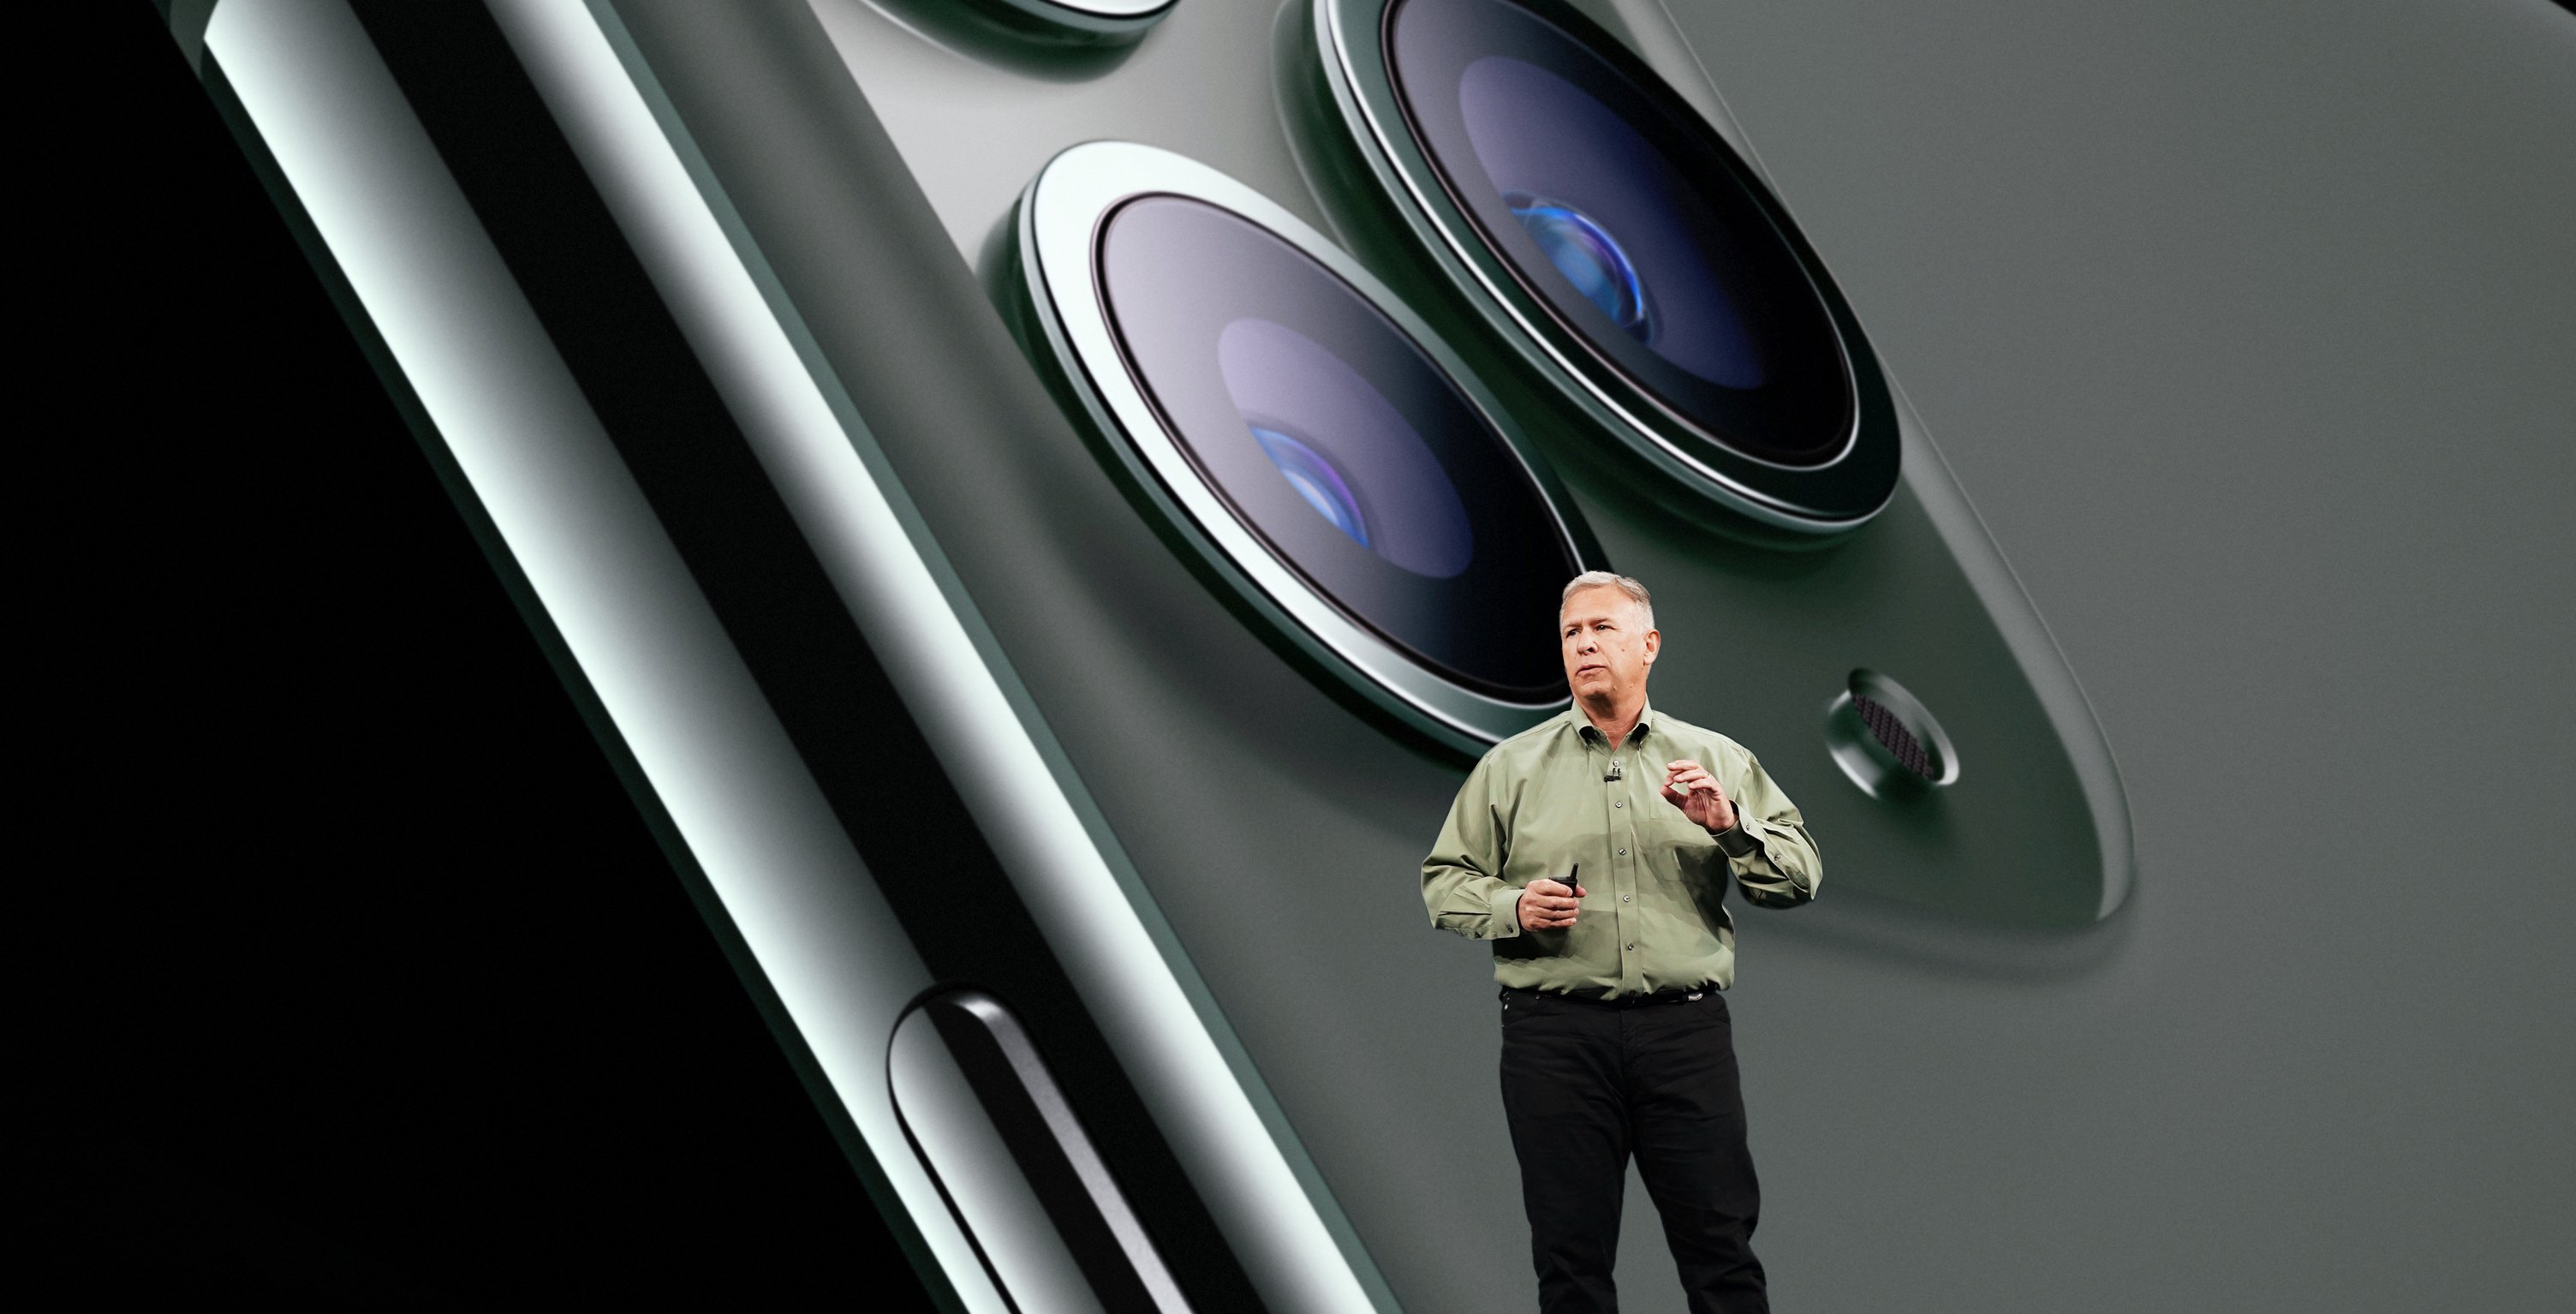 Apple-Keynote-Event-Phil-Schiller-iPhone-11-Pro-091019